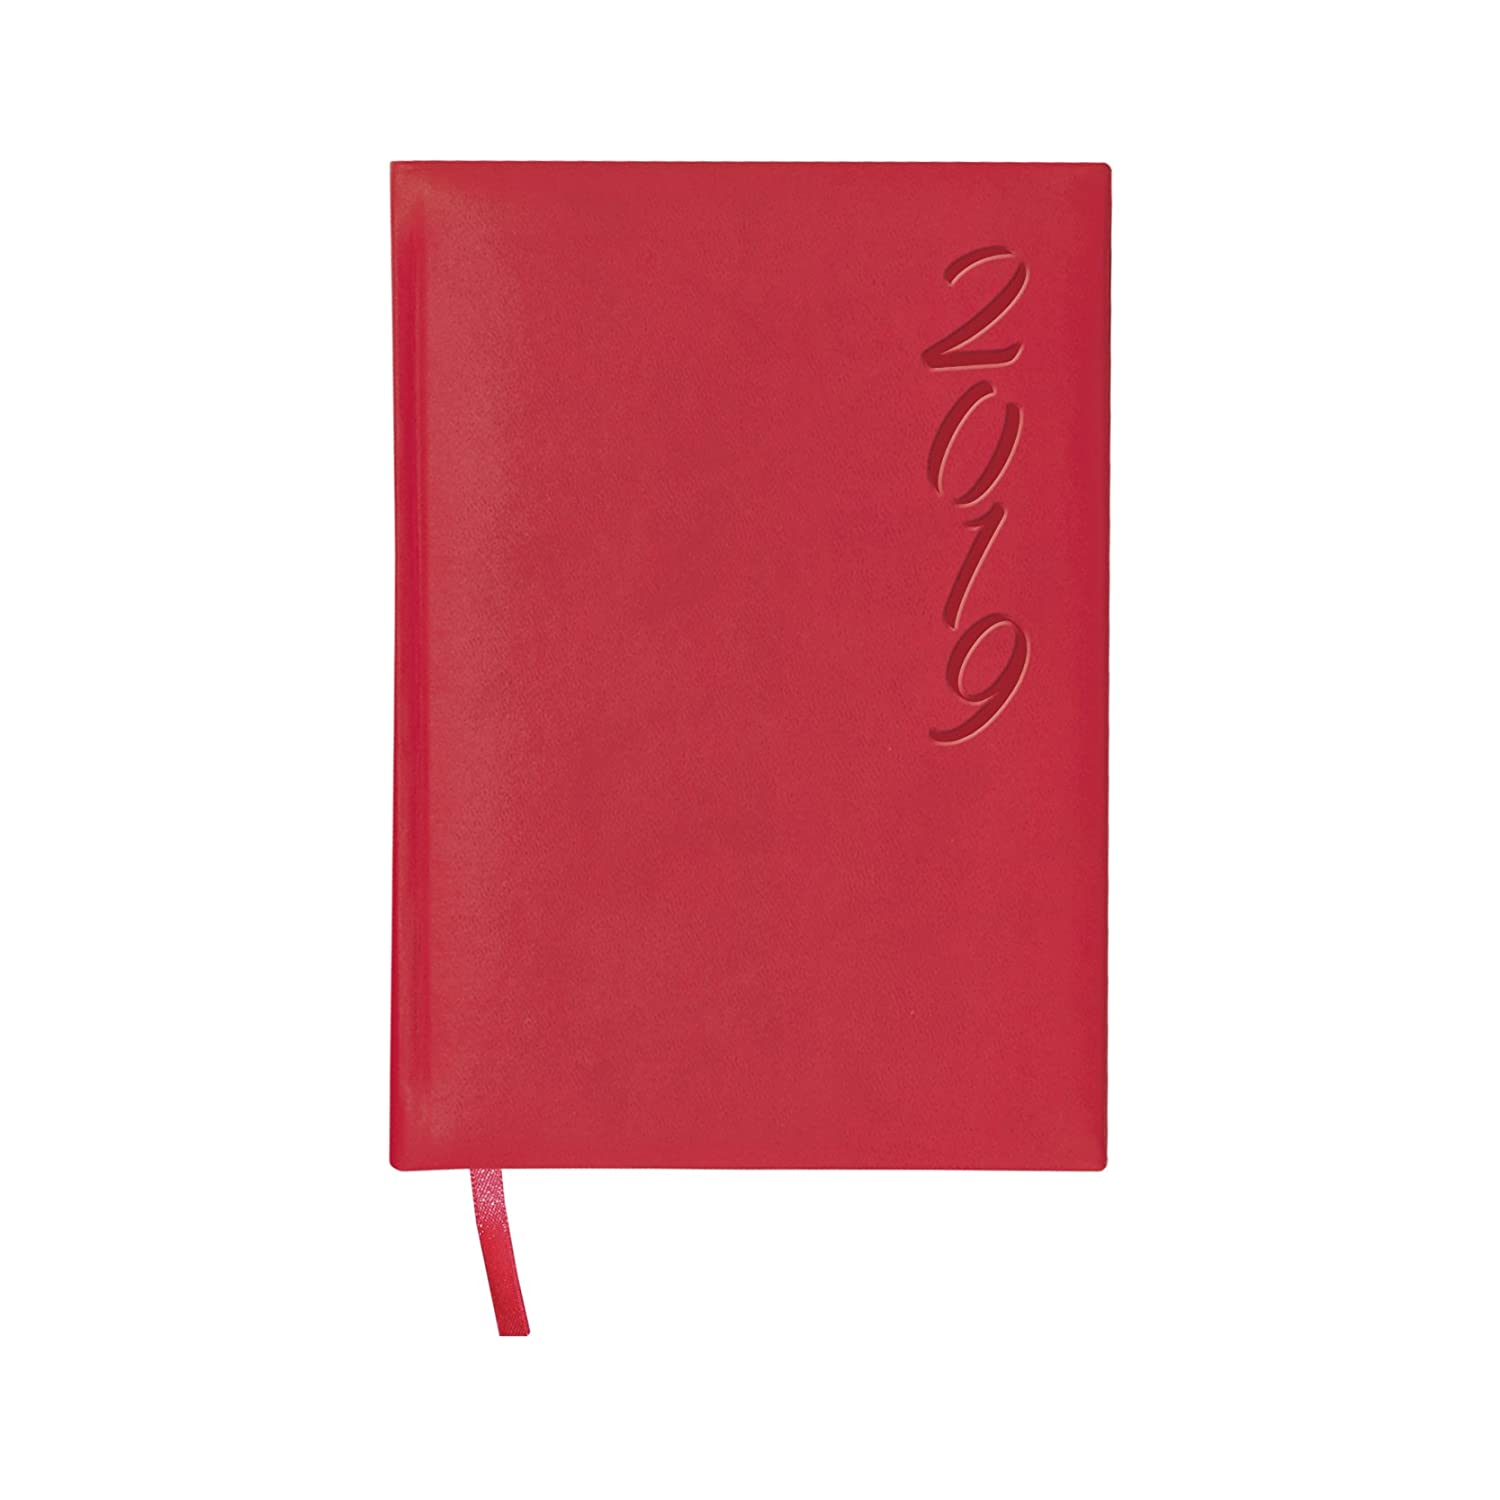 Dohe 11954 - Agenda, color rojo